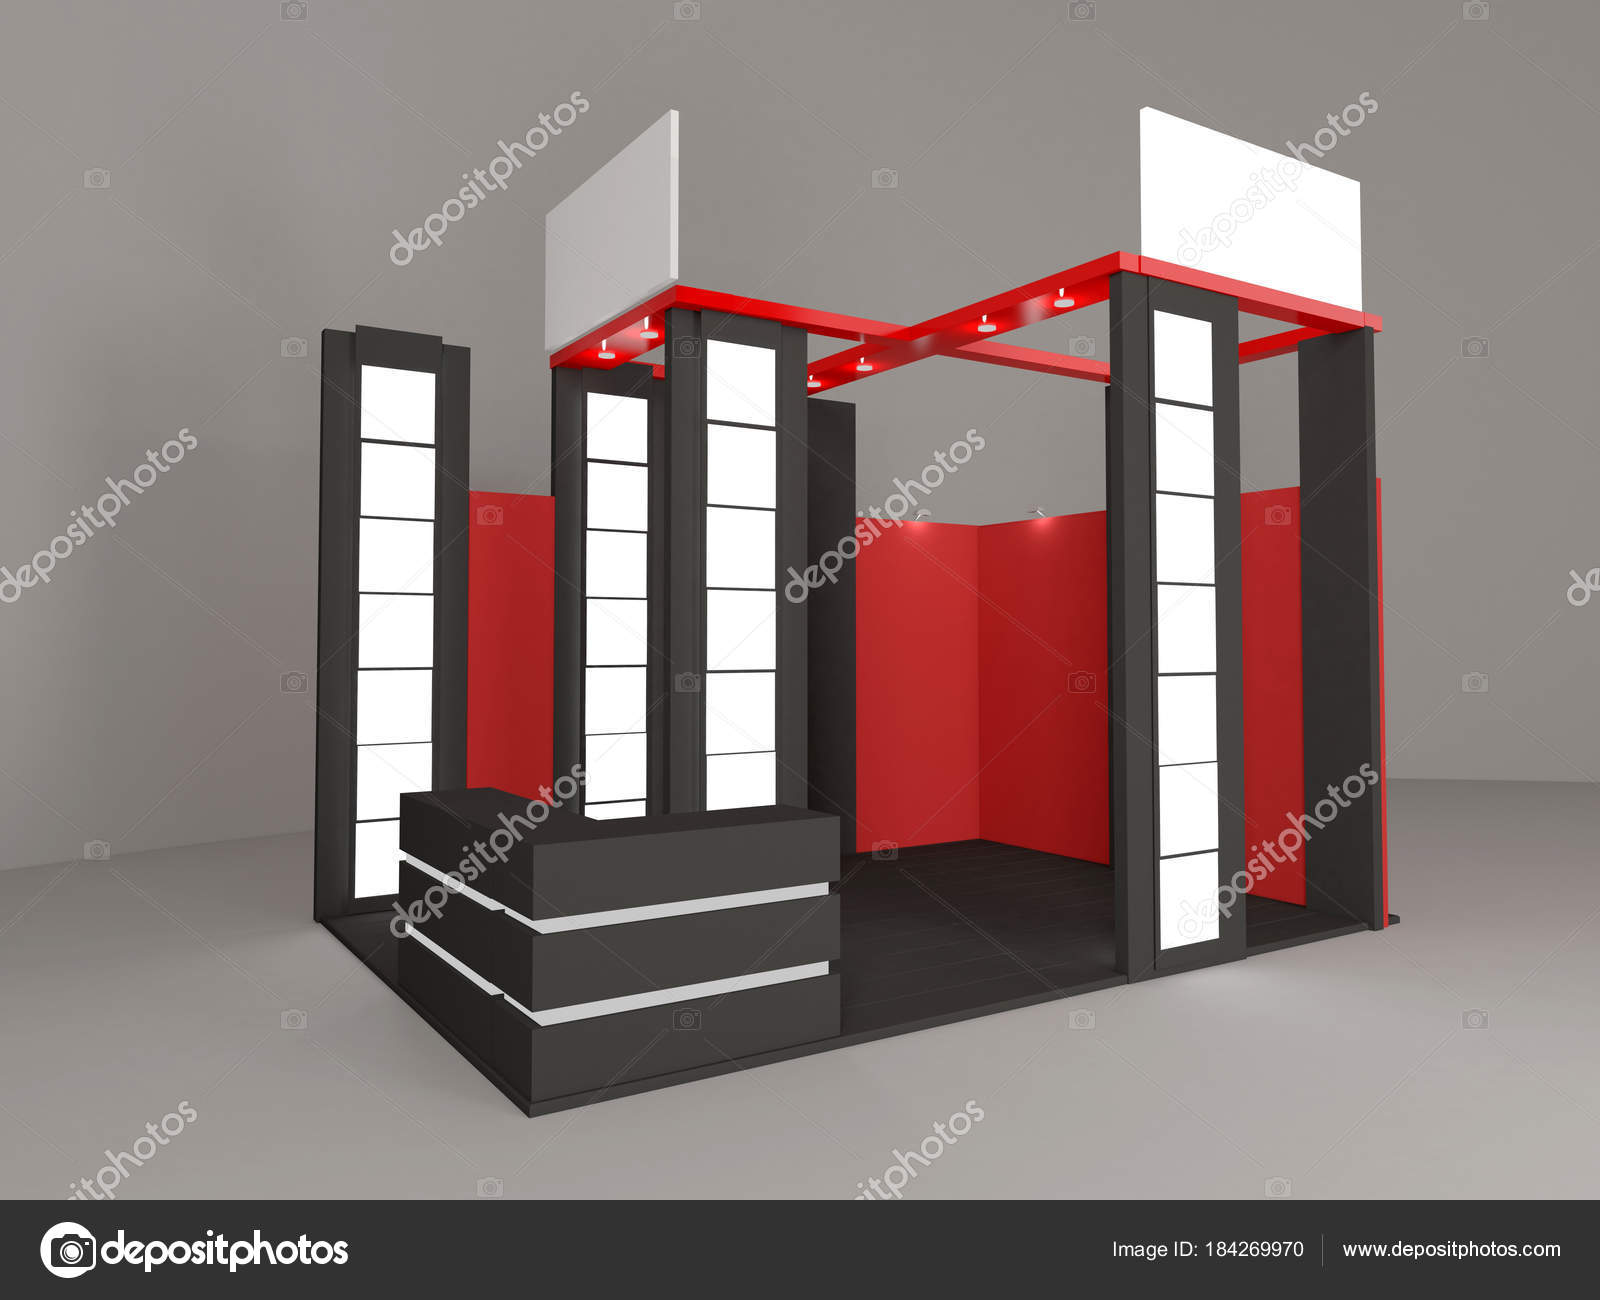 Exhibition Stand 3d Model Free Download : Exhibition shop d mili download d model free d models